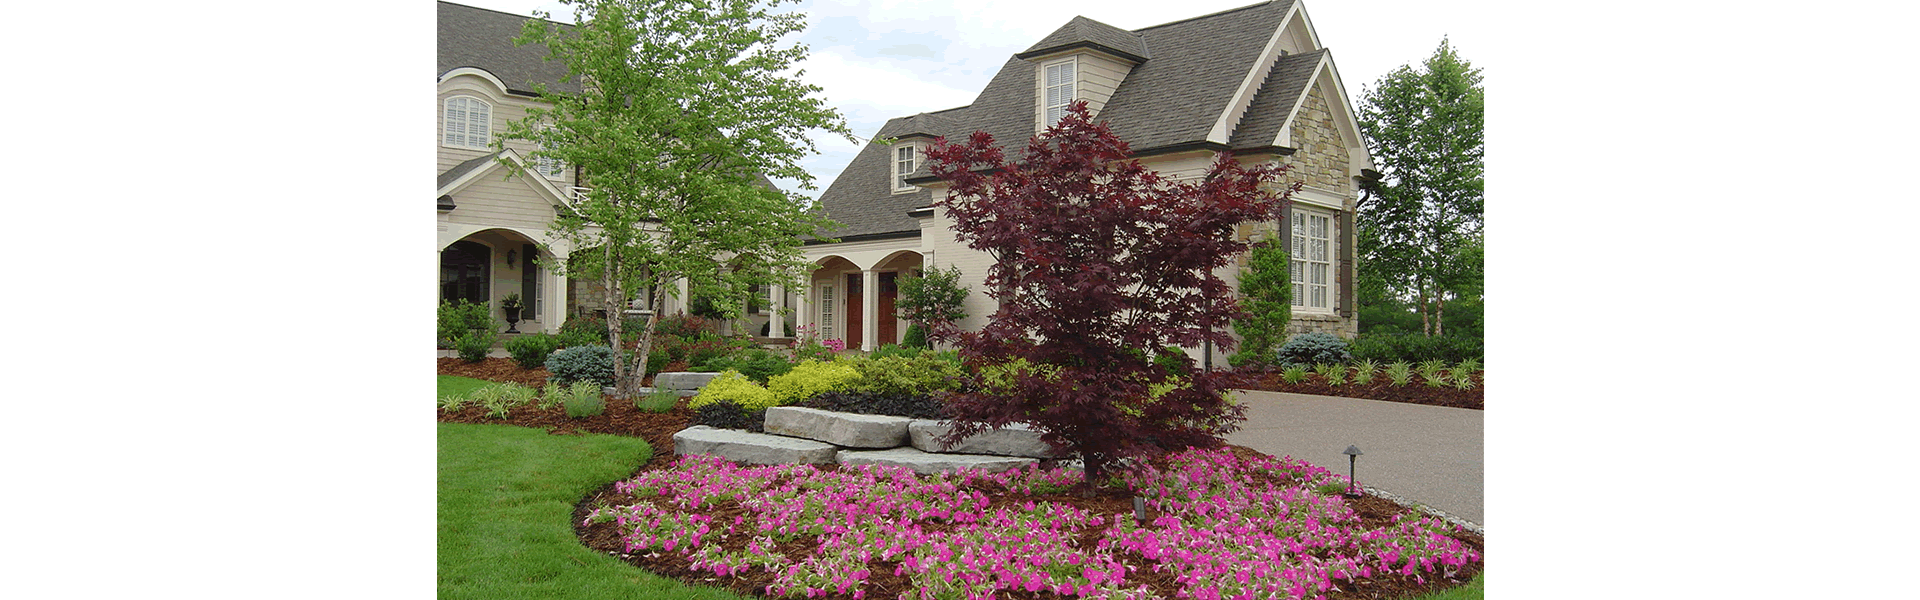 A well-designed landscape can change the way you see your home